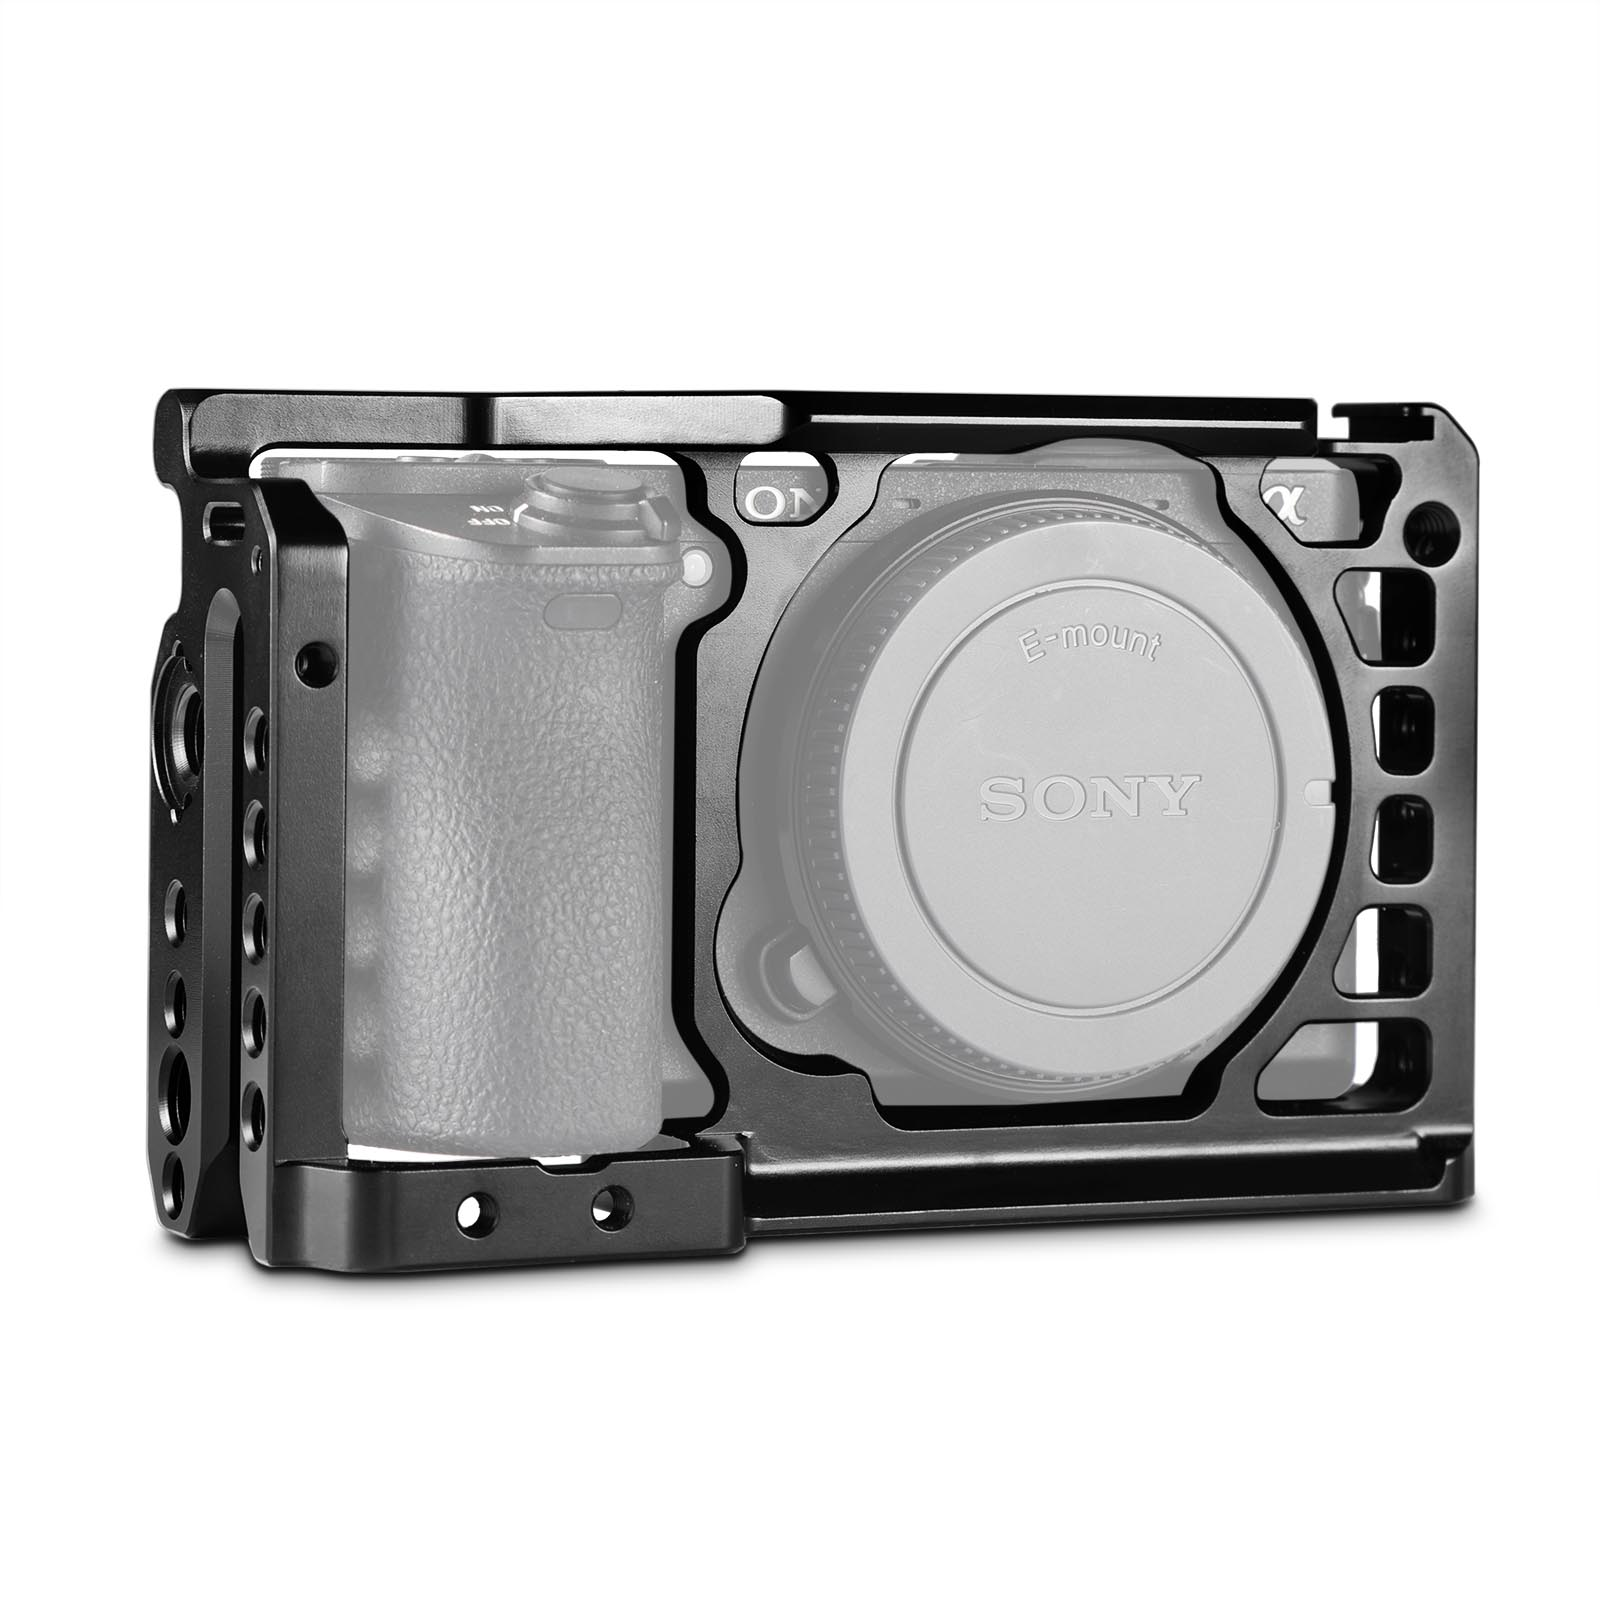 SmallRig Cage for Sony Alpha A6500 / ILCE 6500 4K Compact System Mirrorless Camera - 1889 sony alpha ilce 7s body